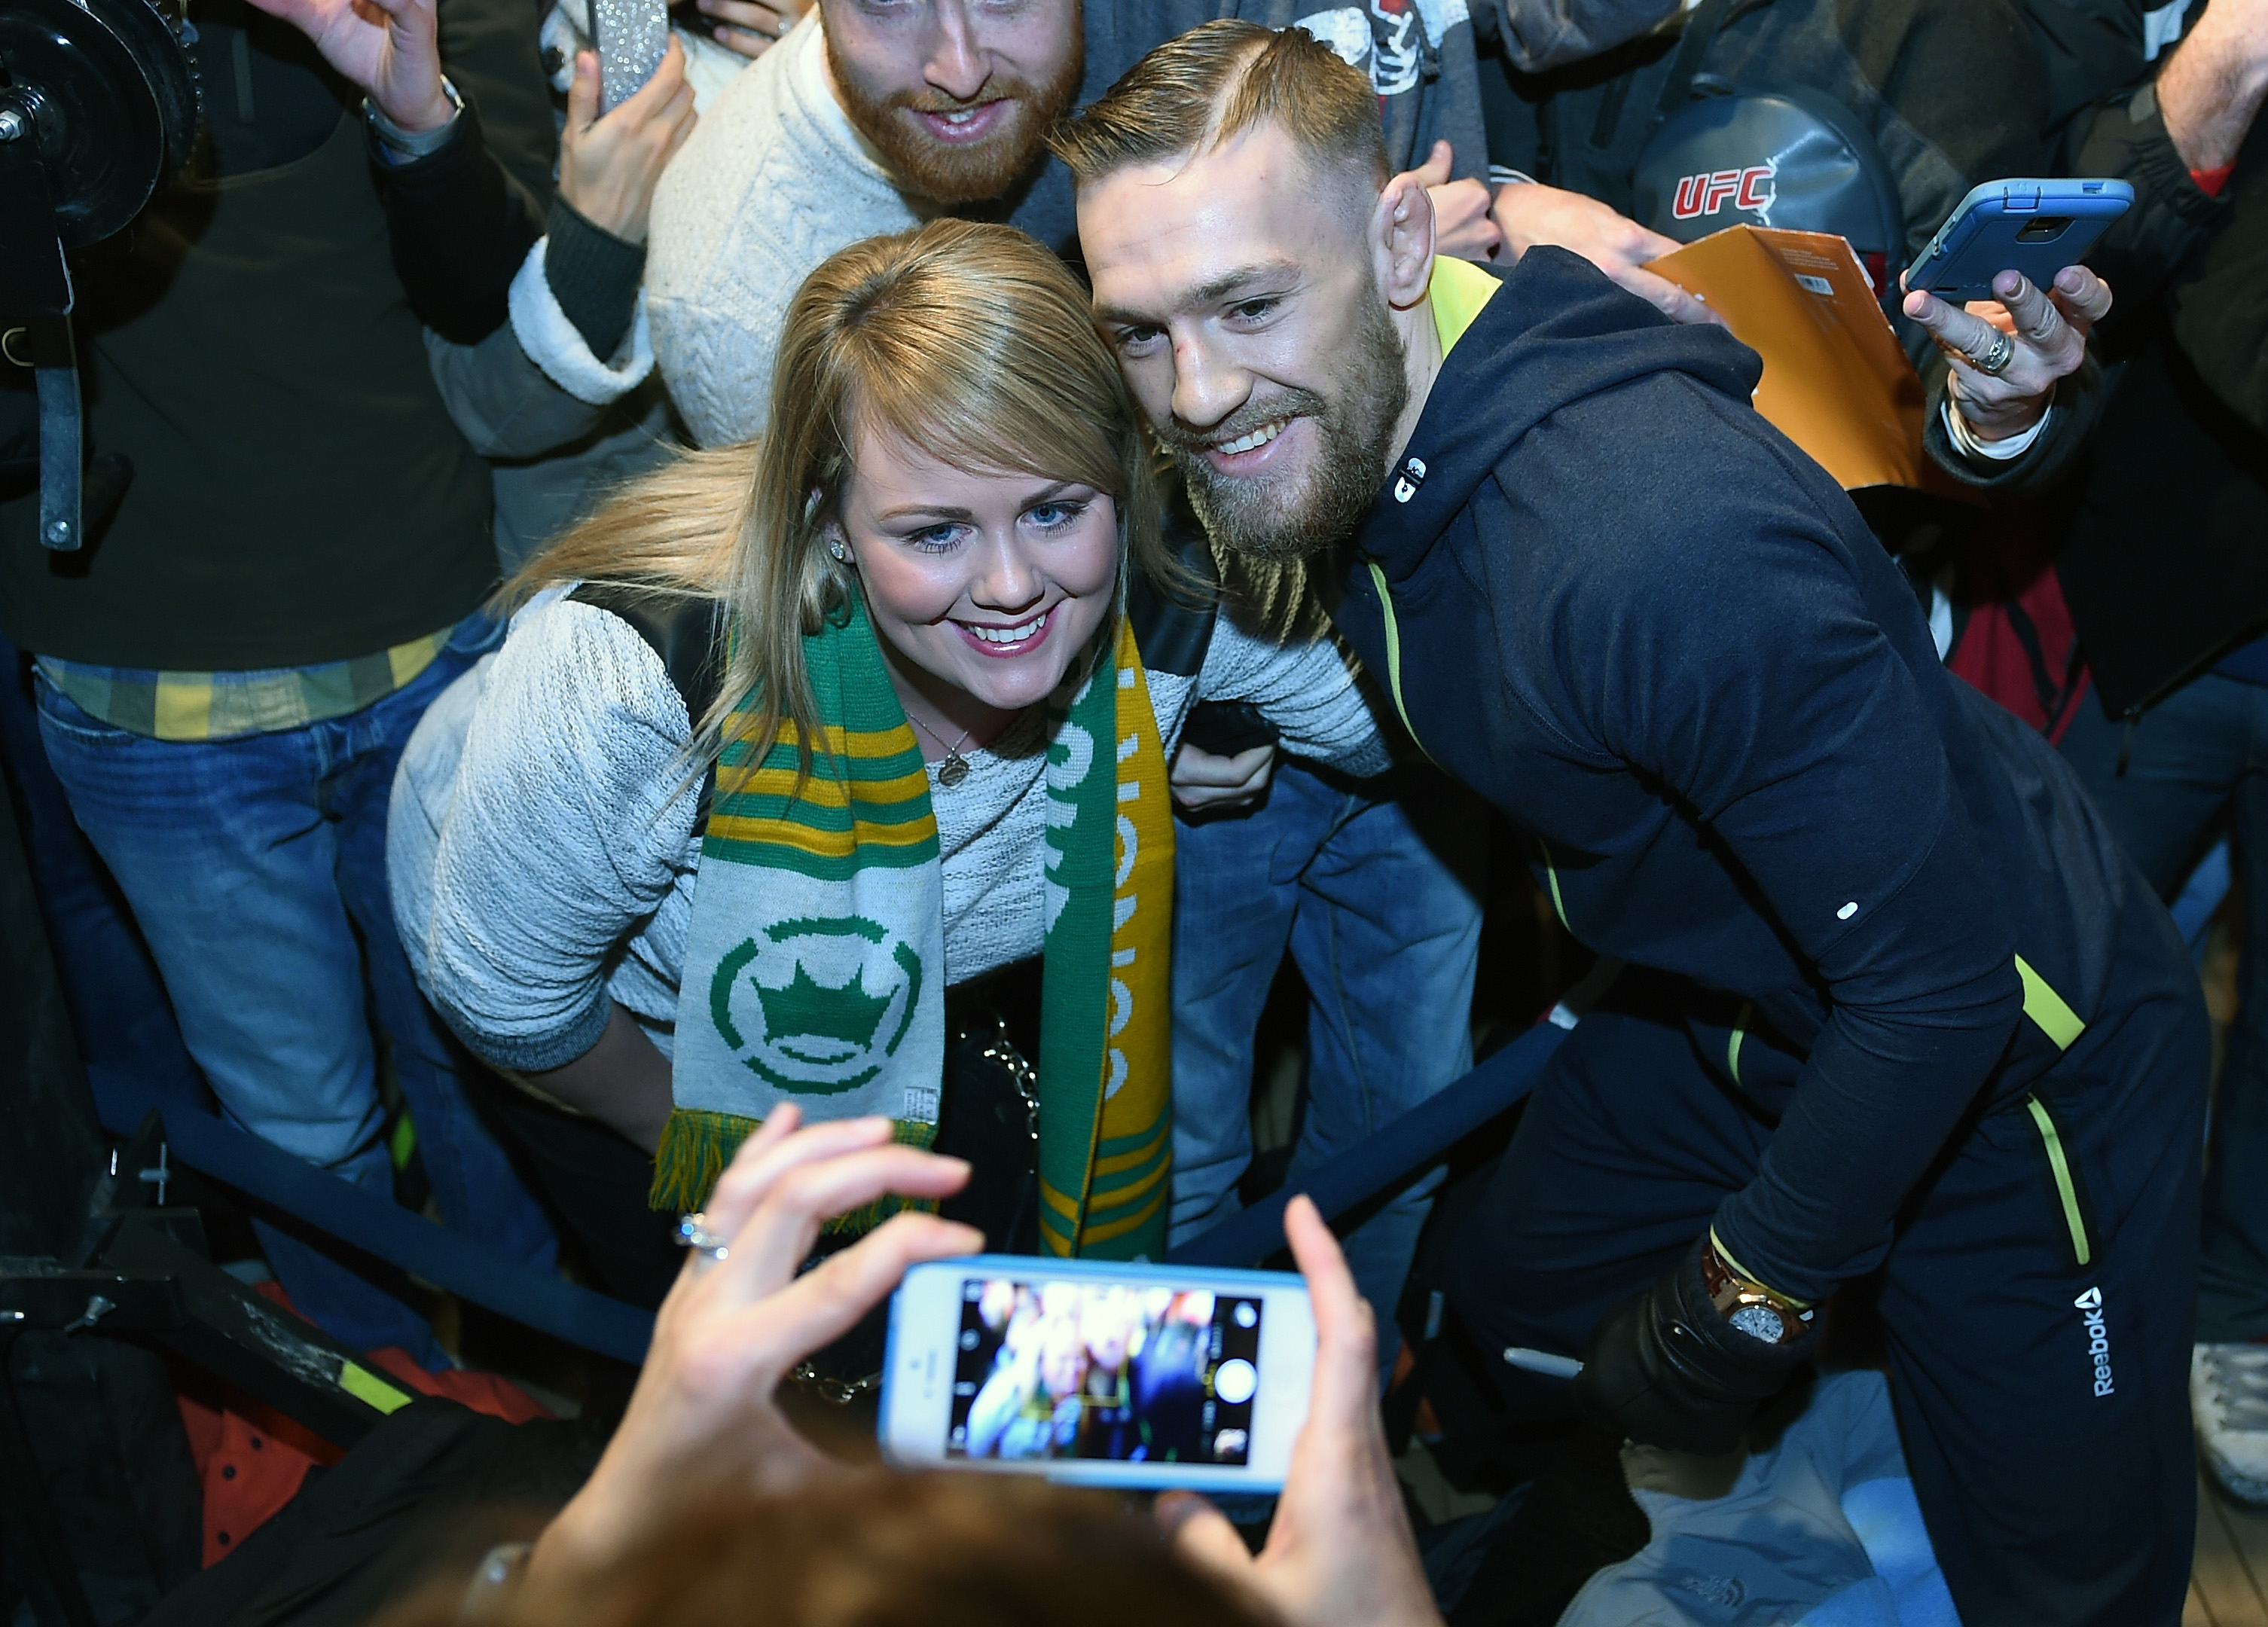 McGregor poses for pictures with fans.